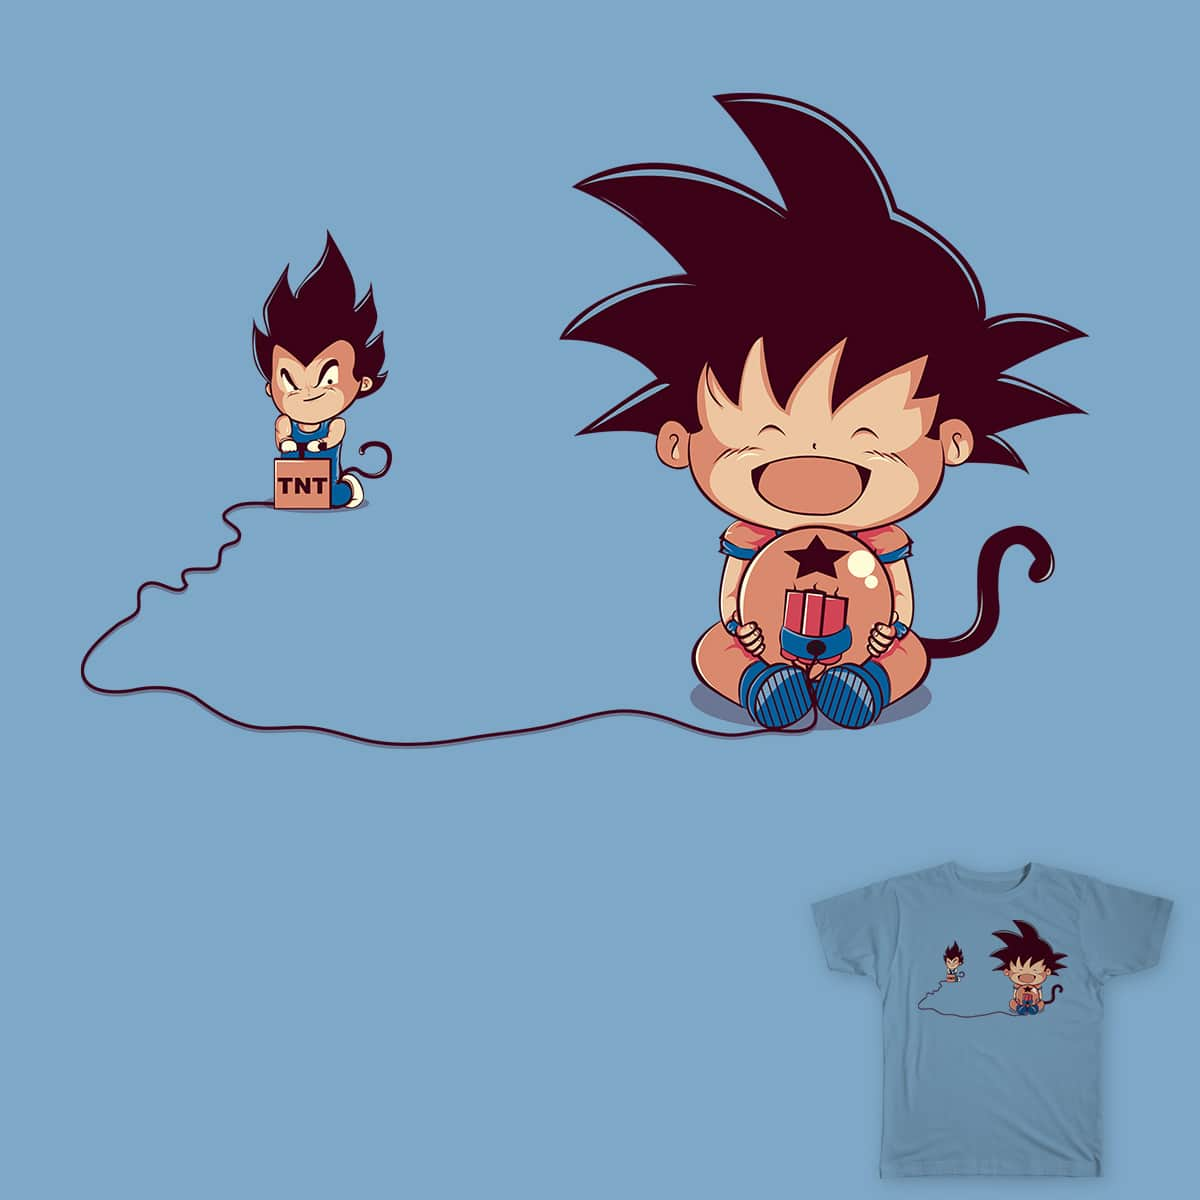 Revenge by DonnieArt on Threadless